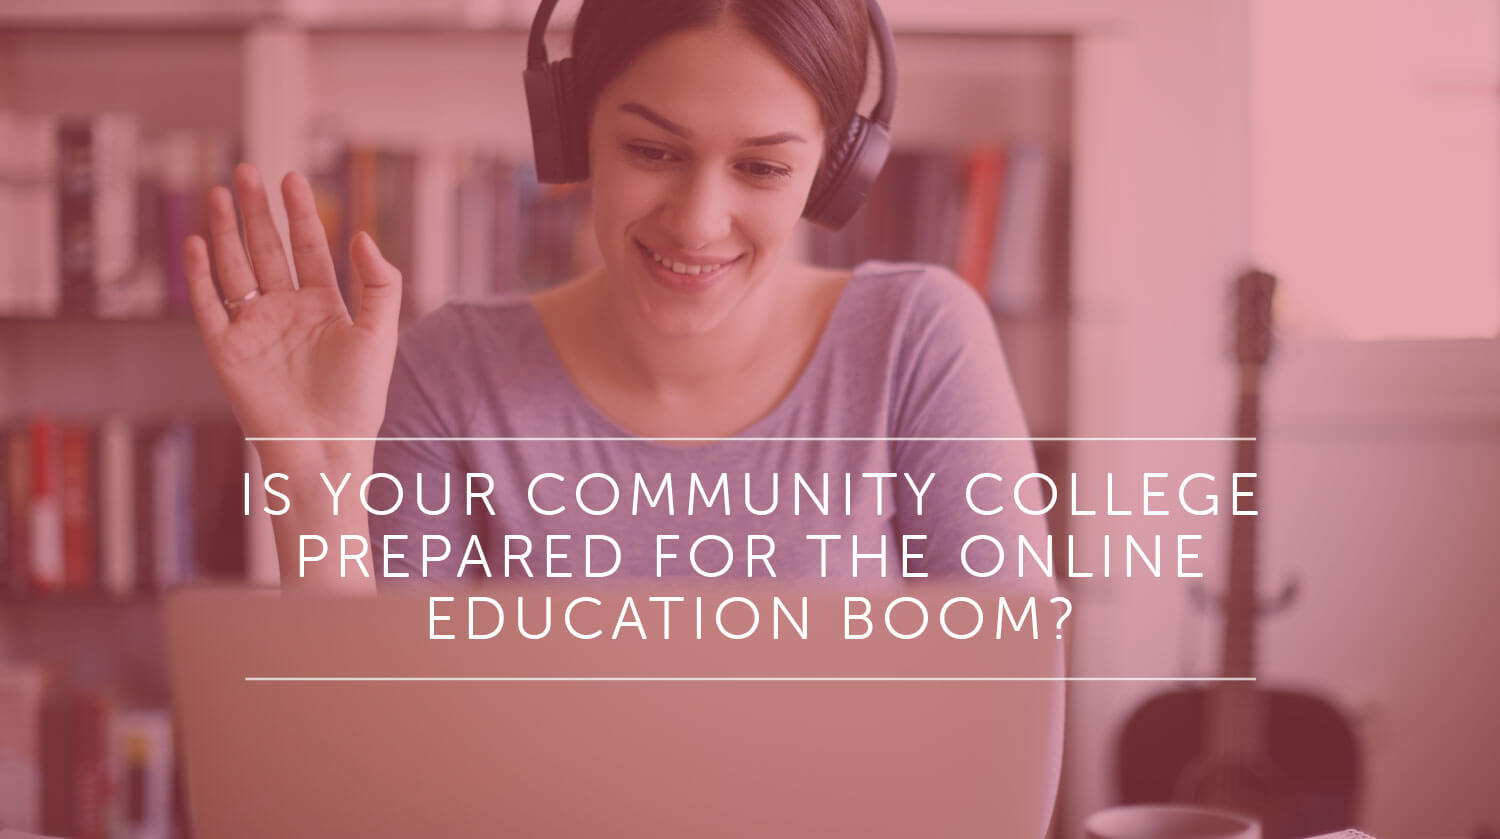 Is Your Community College Prepared for the Online Education Boom?